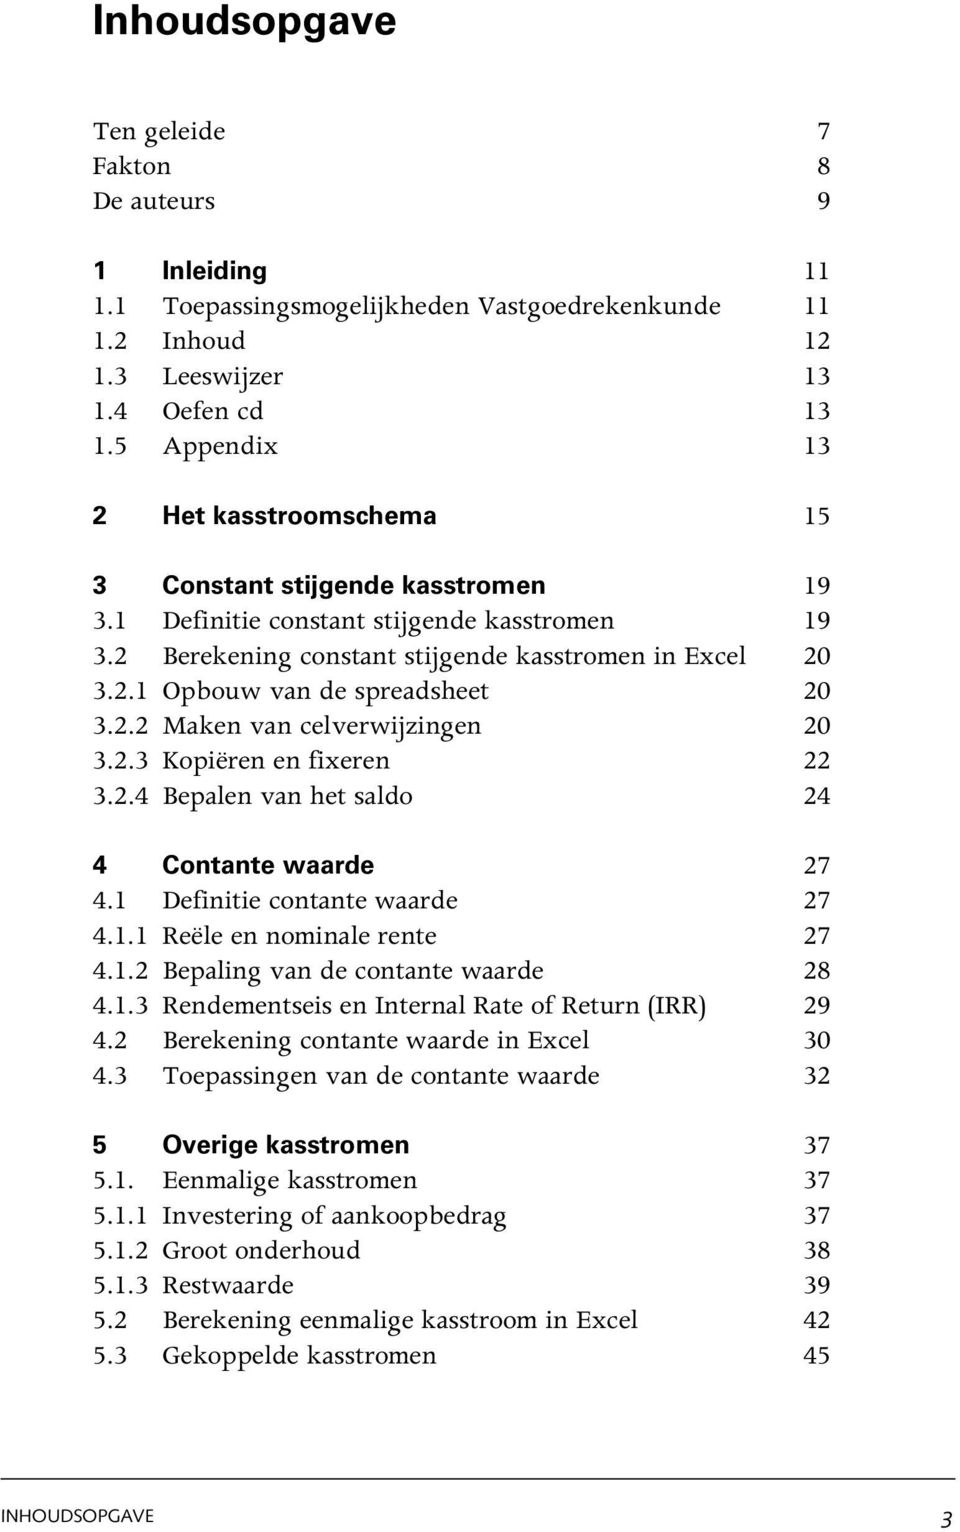 Vastgoedrekenen Met Spreadsheets Download Pertaining To Vastgoedrekenen Met Spreadsheets  Pdf